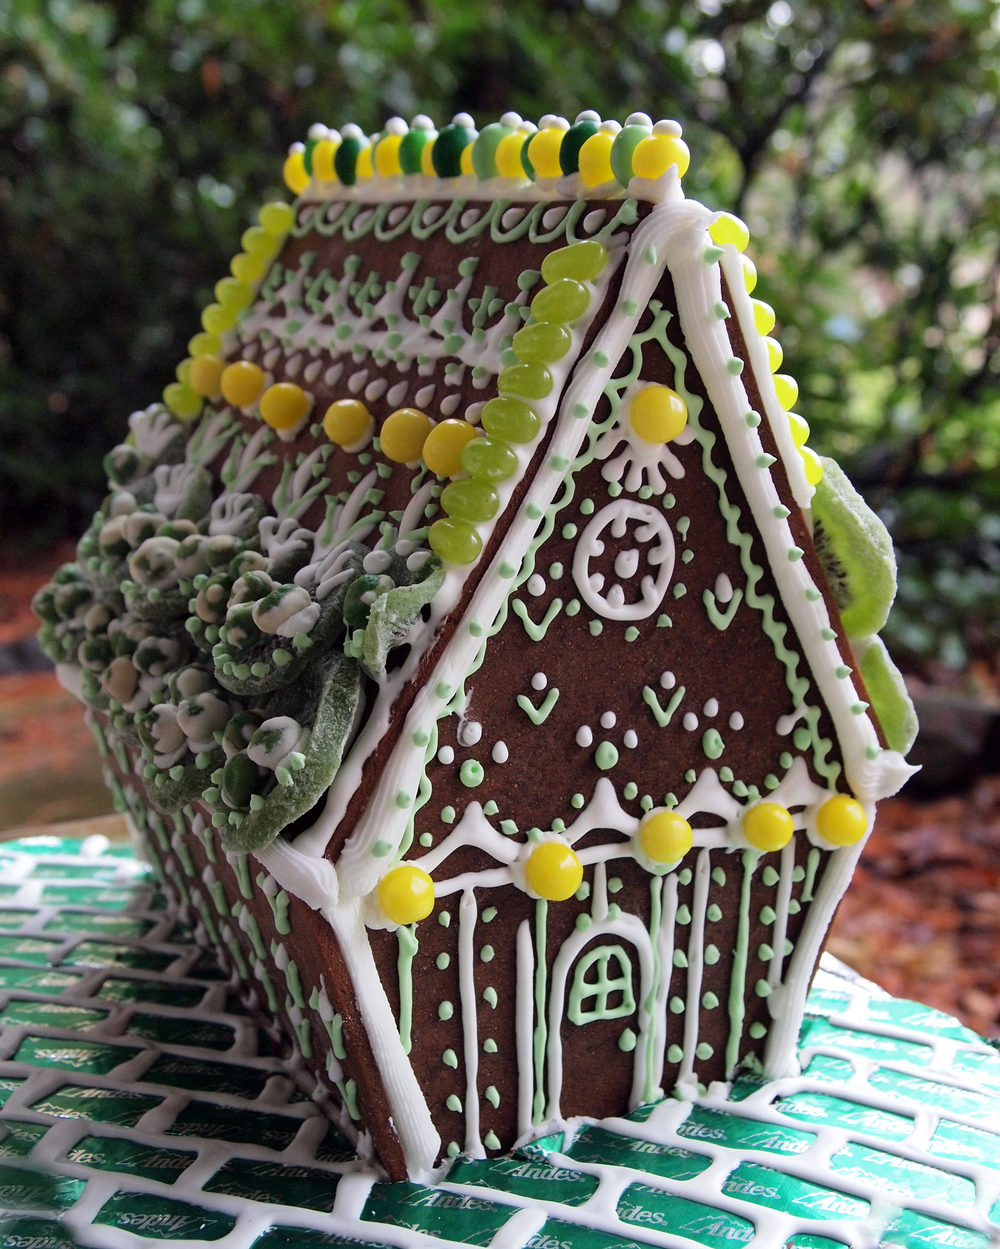 green_gingerbread house.jpg